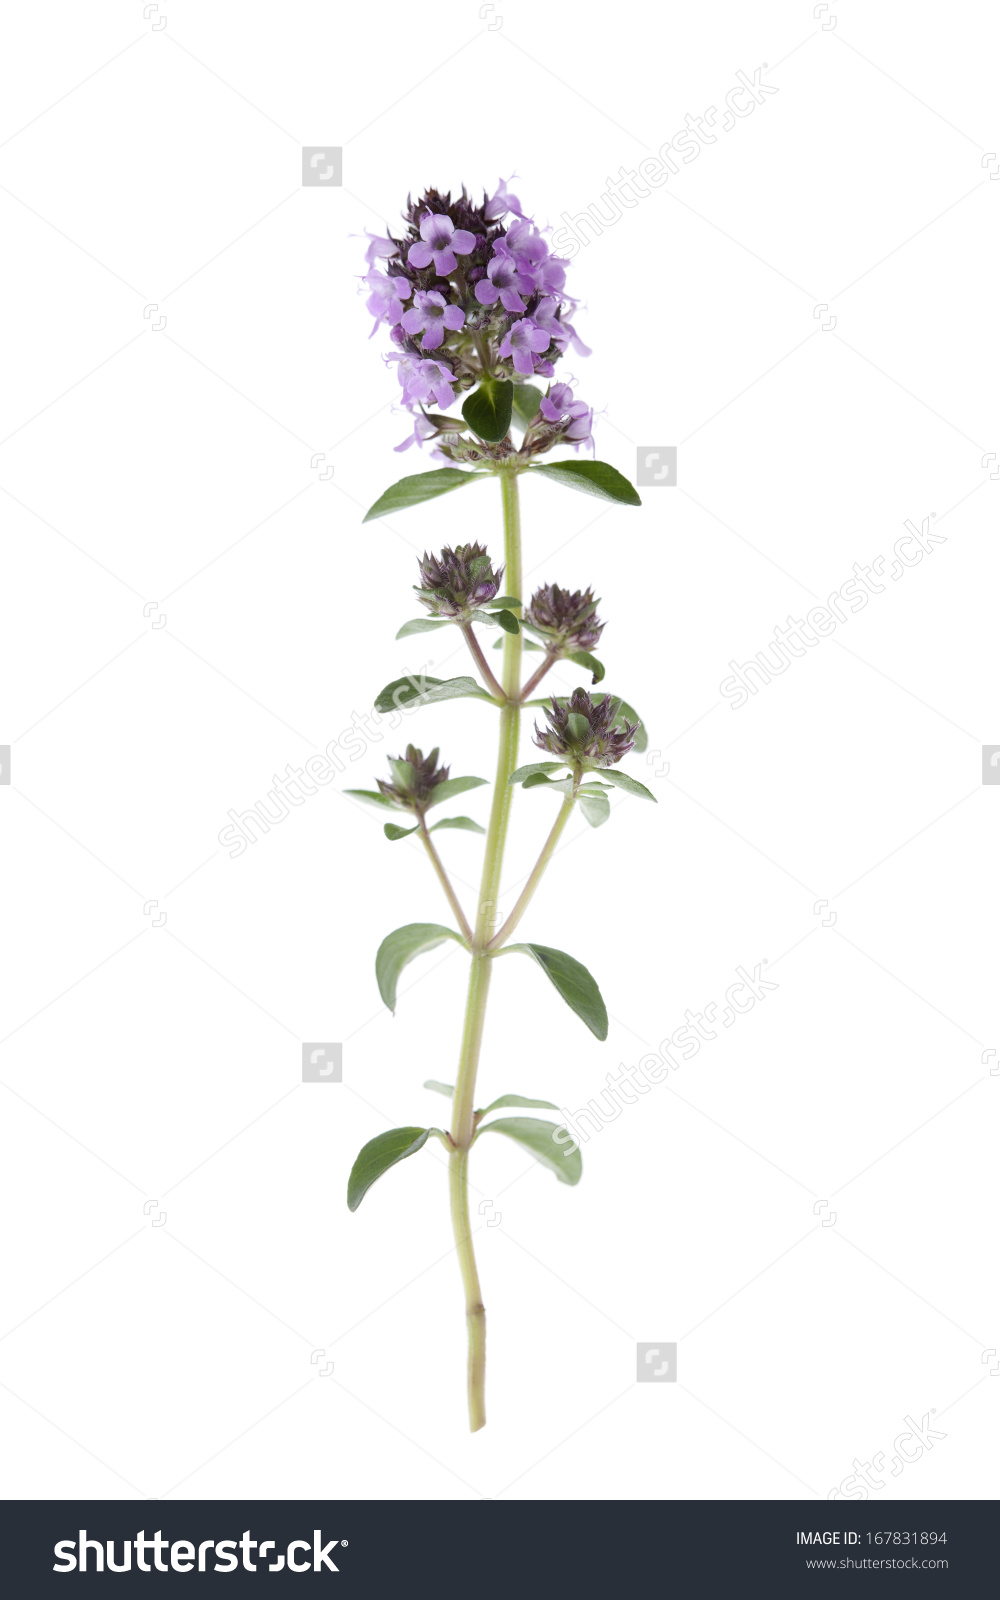 Thymus Vulgaris Thyme Flower Isolated On Stock Photo 167831894.